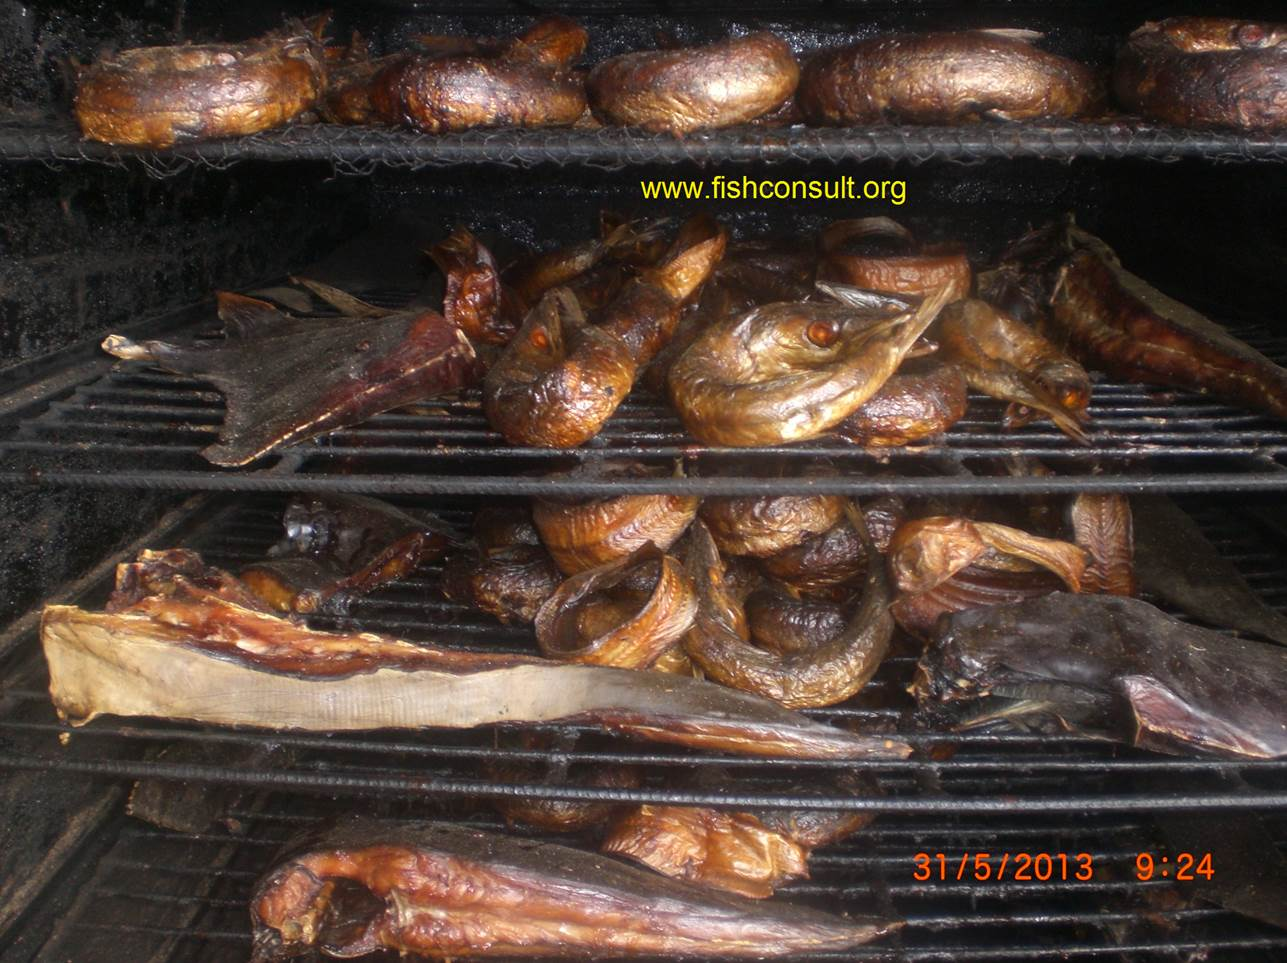 Improved fish smoking in cameroon fish consulting group for How to smoke fish in a smoker